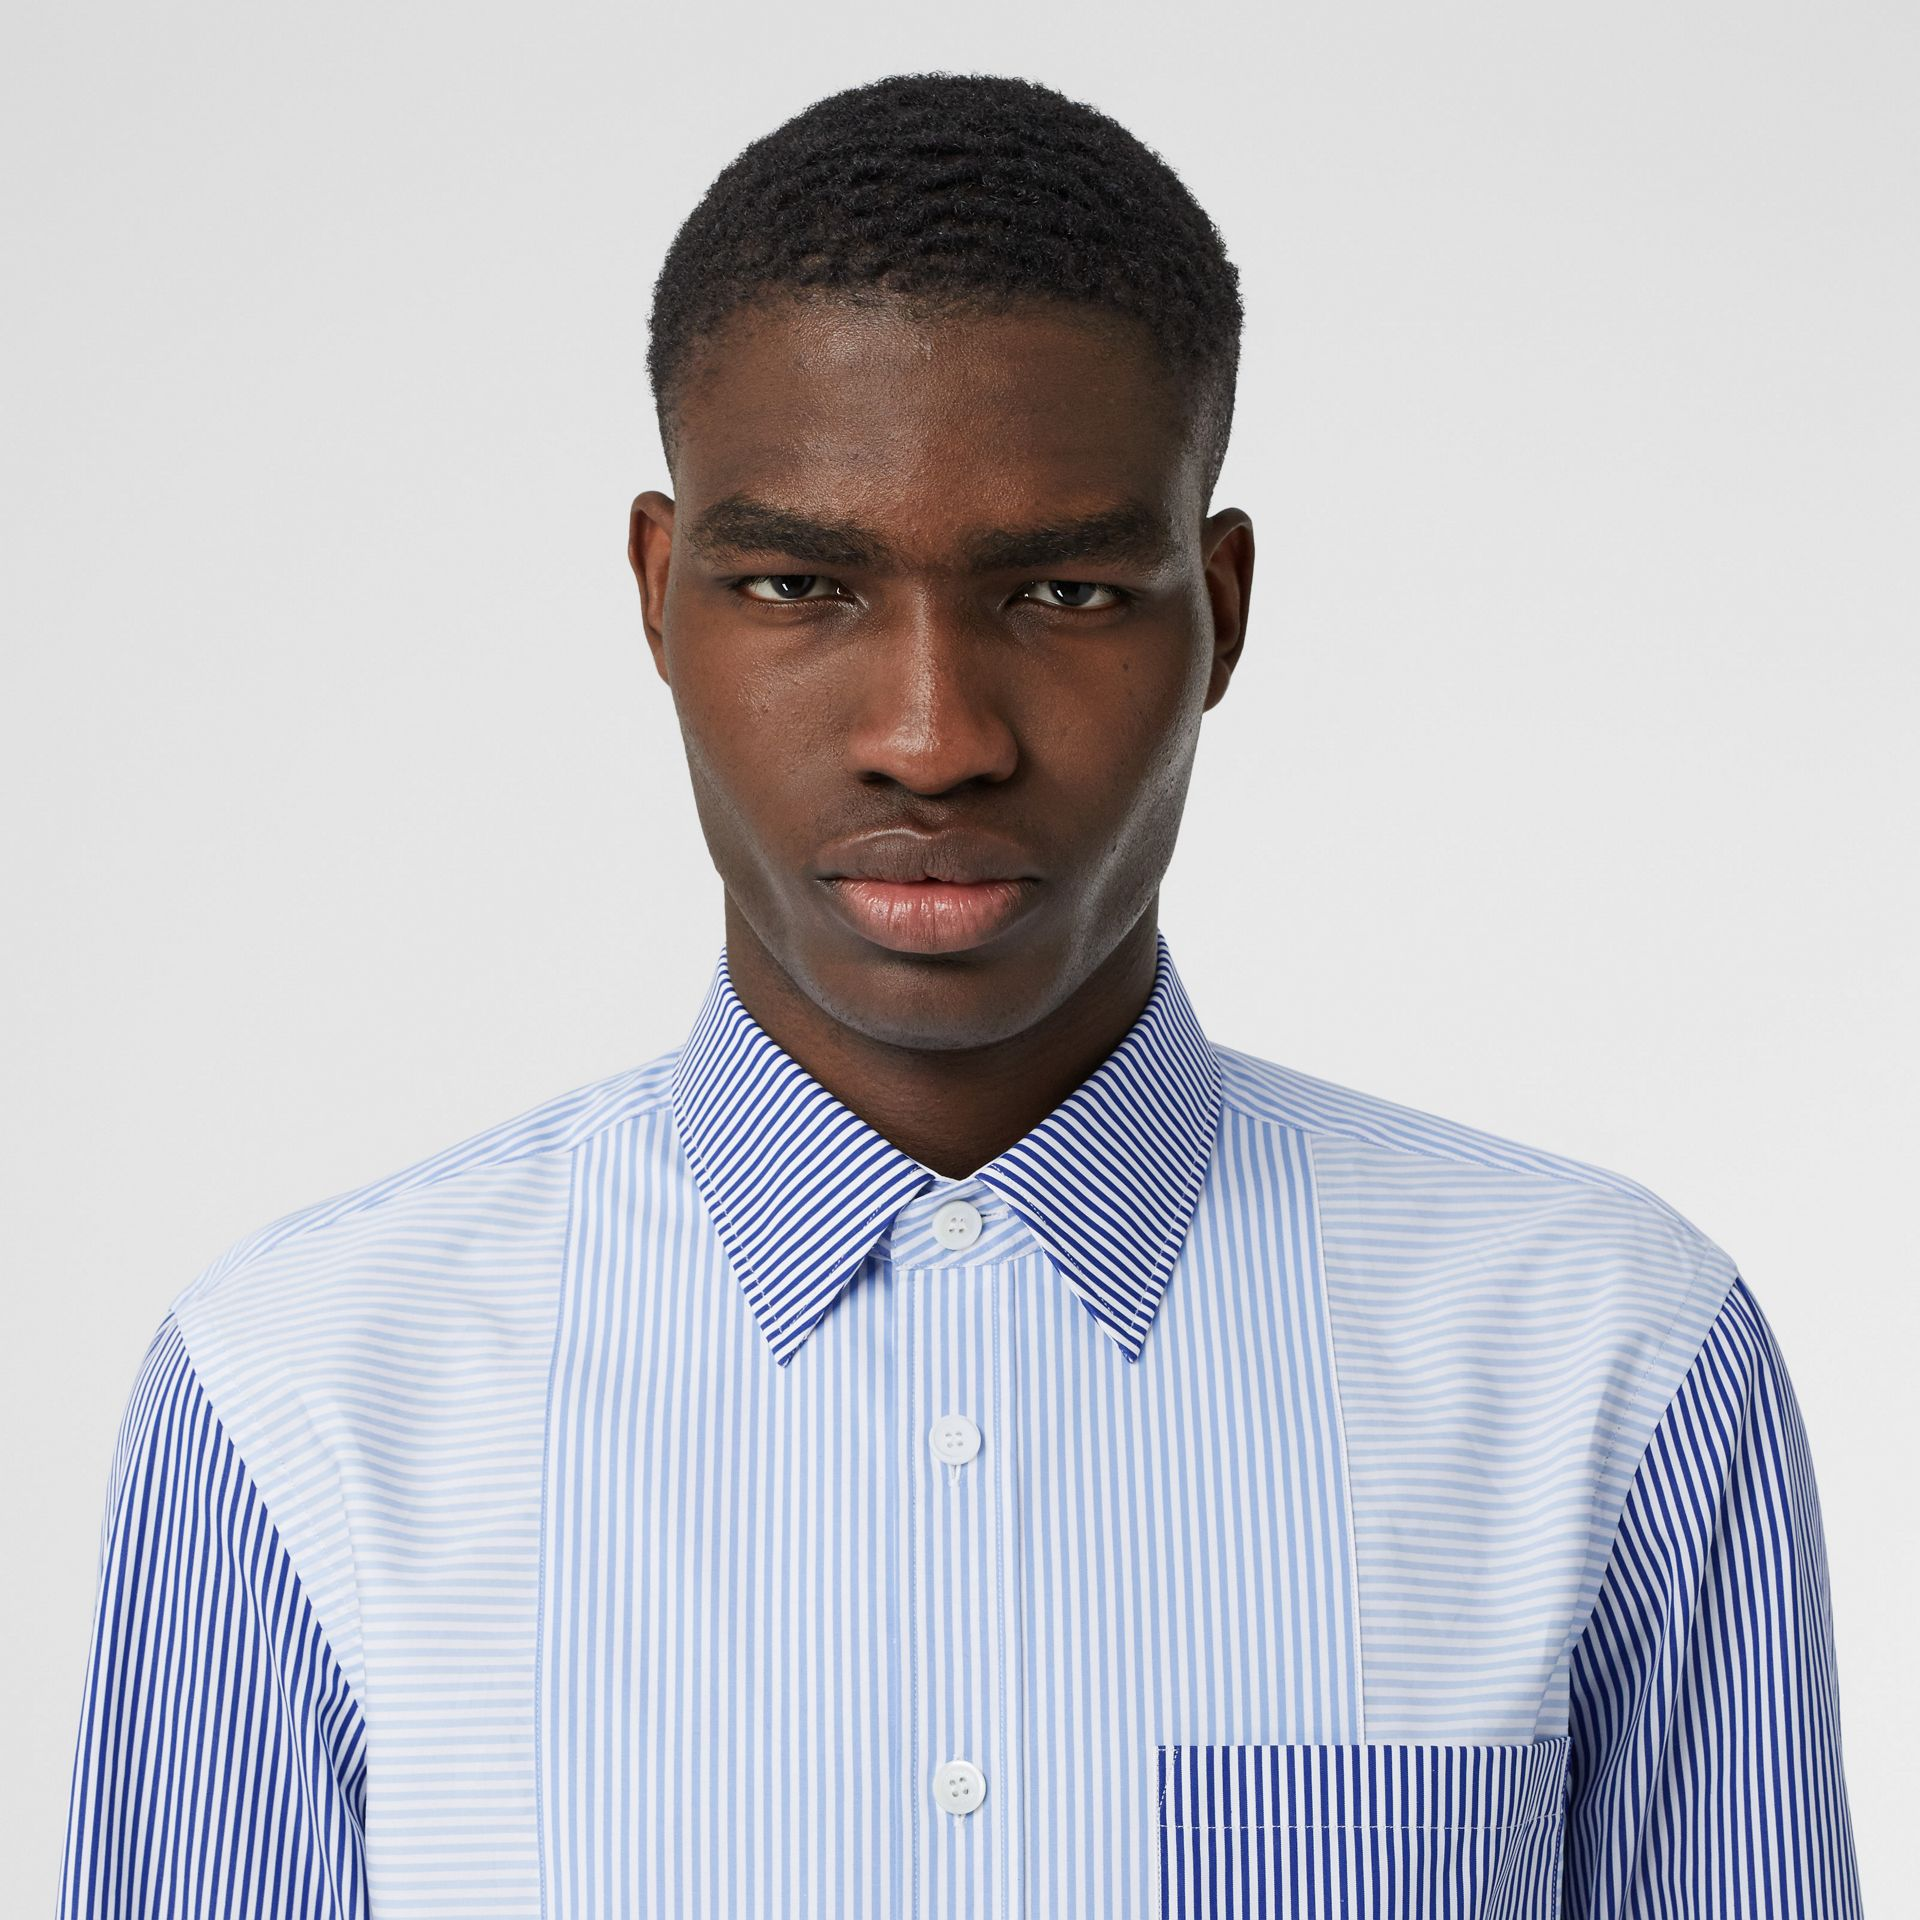 Classic Fit Patchwork Striped Cotton Shirt in Light Blue - Men | Burberry United Kingdom - gallery image 1